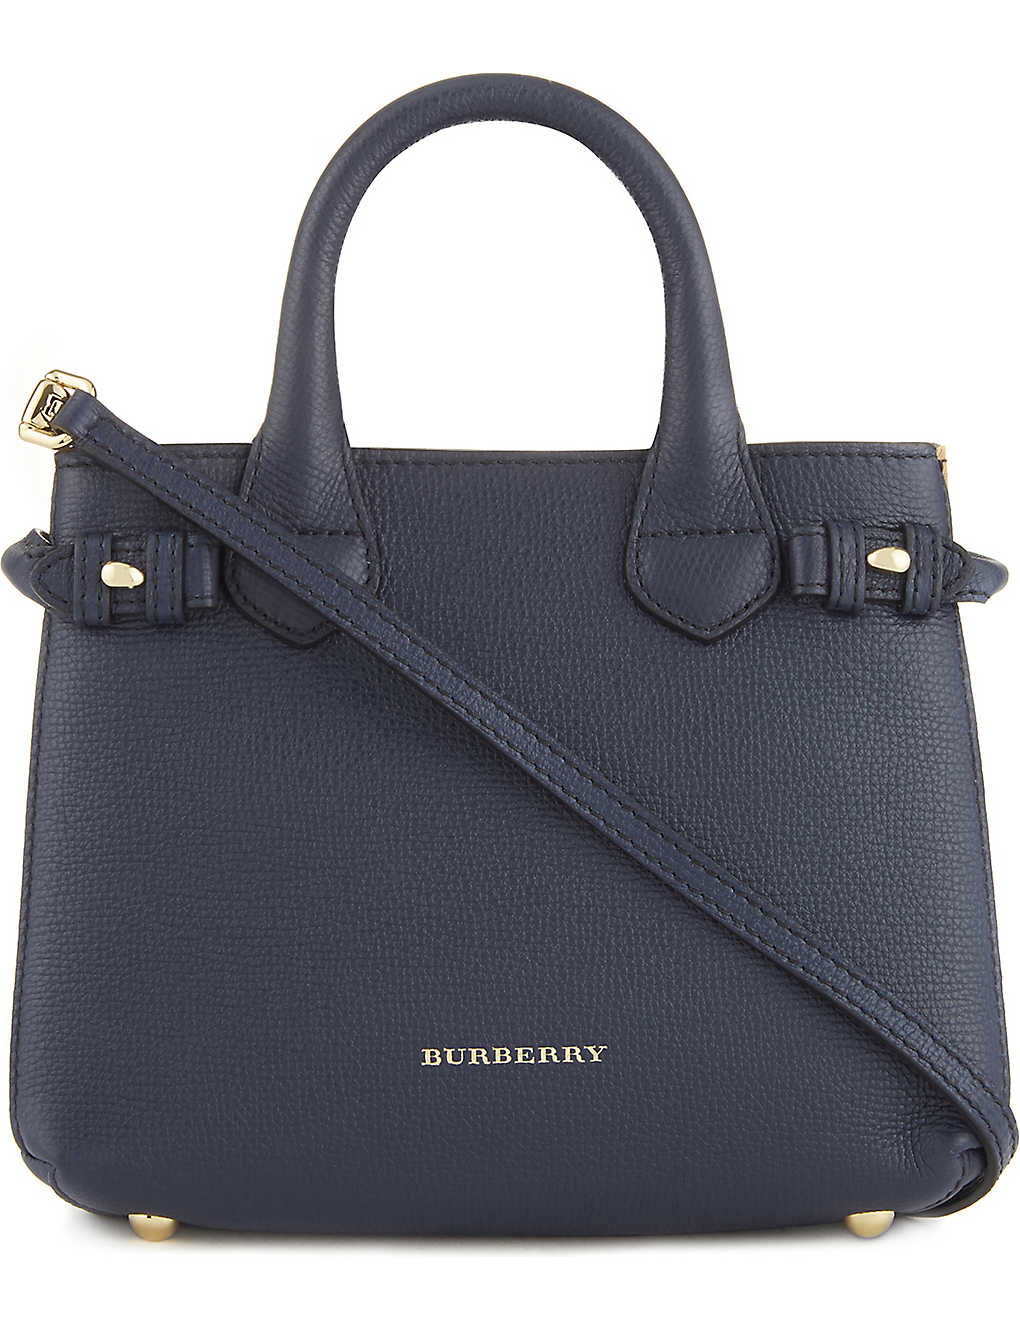 763a823acc4e BURBERRY - Banner check trim baby leather tote